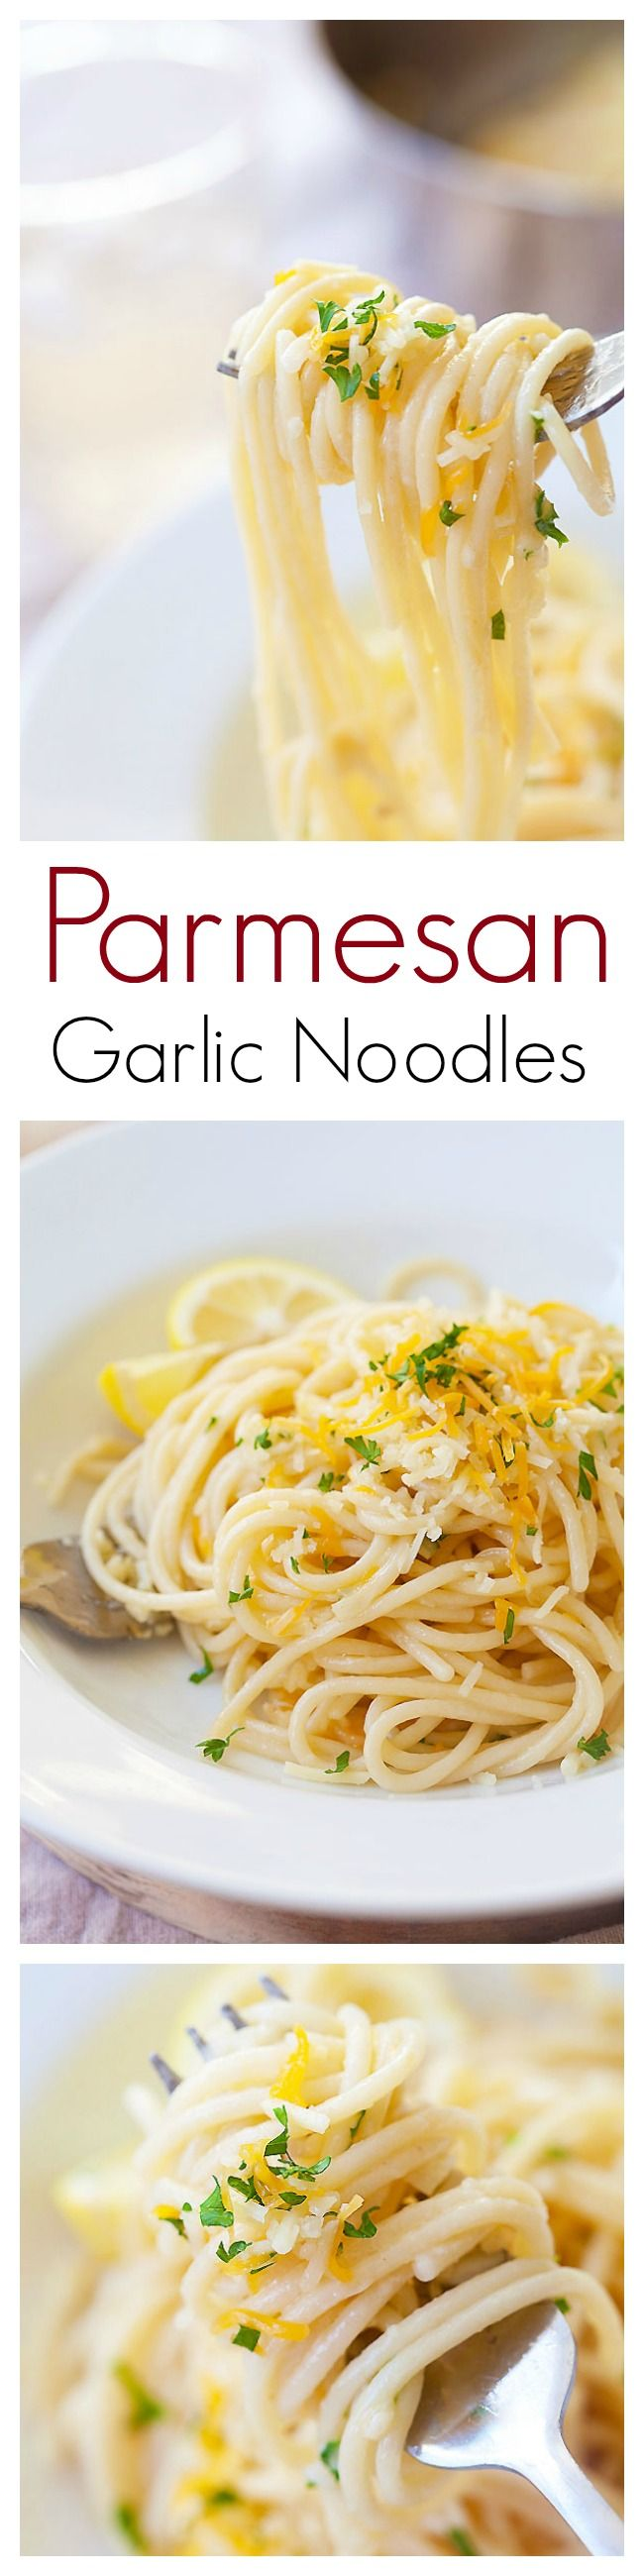 Quick and easy Parmesan Garlic Noodles with garlic and Parmesan cheese. This Parmesan Garlic Noodles recipe takes 20 mins and great for the entire family | rasamalaysia.com